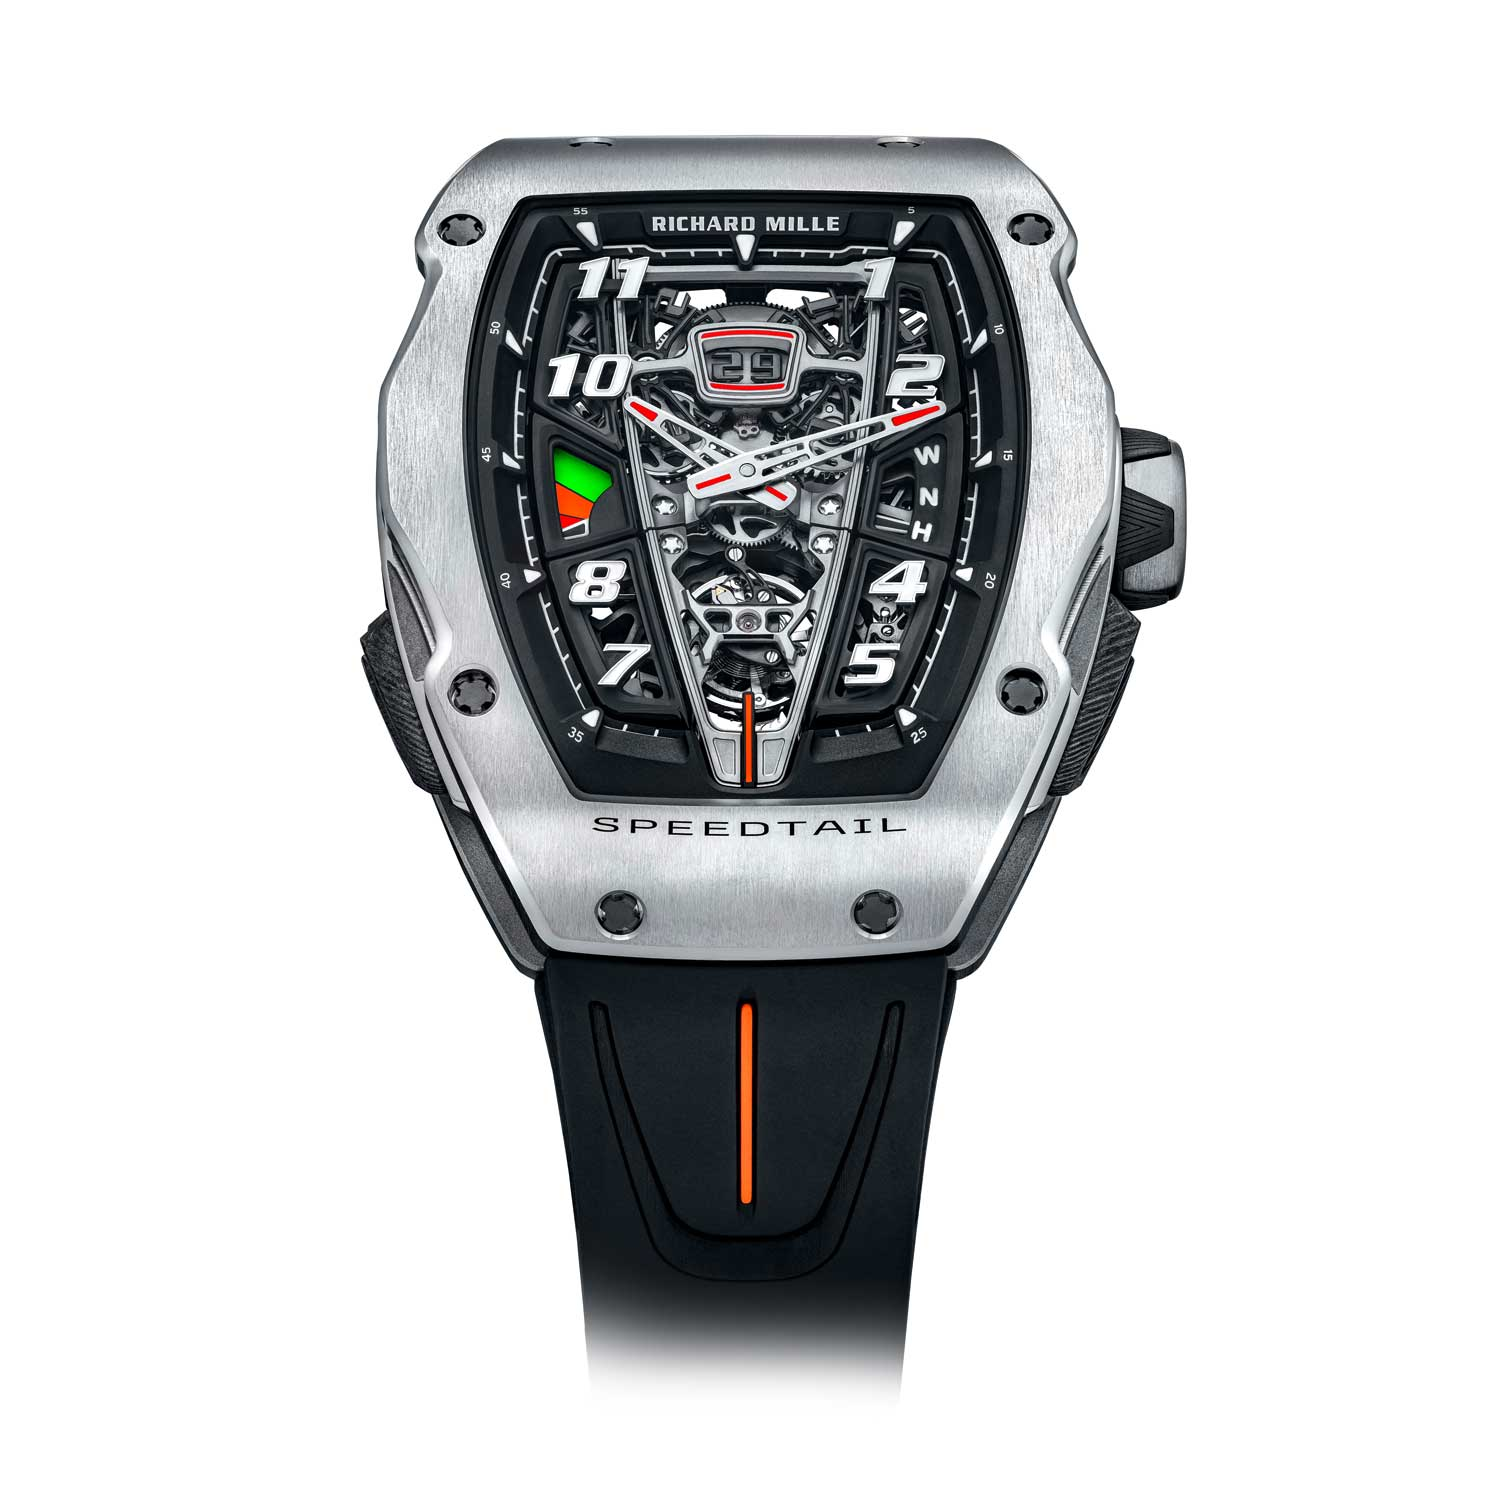 The RM 40-01 Speedtail is the third watch born out of the collaboration between the Richard Mille and McLaren